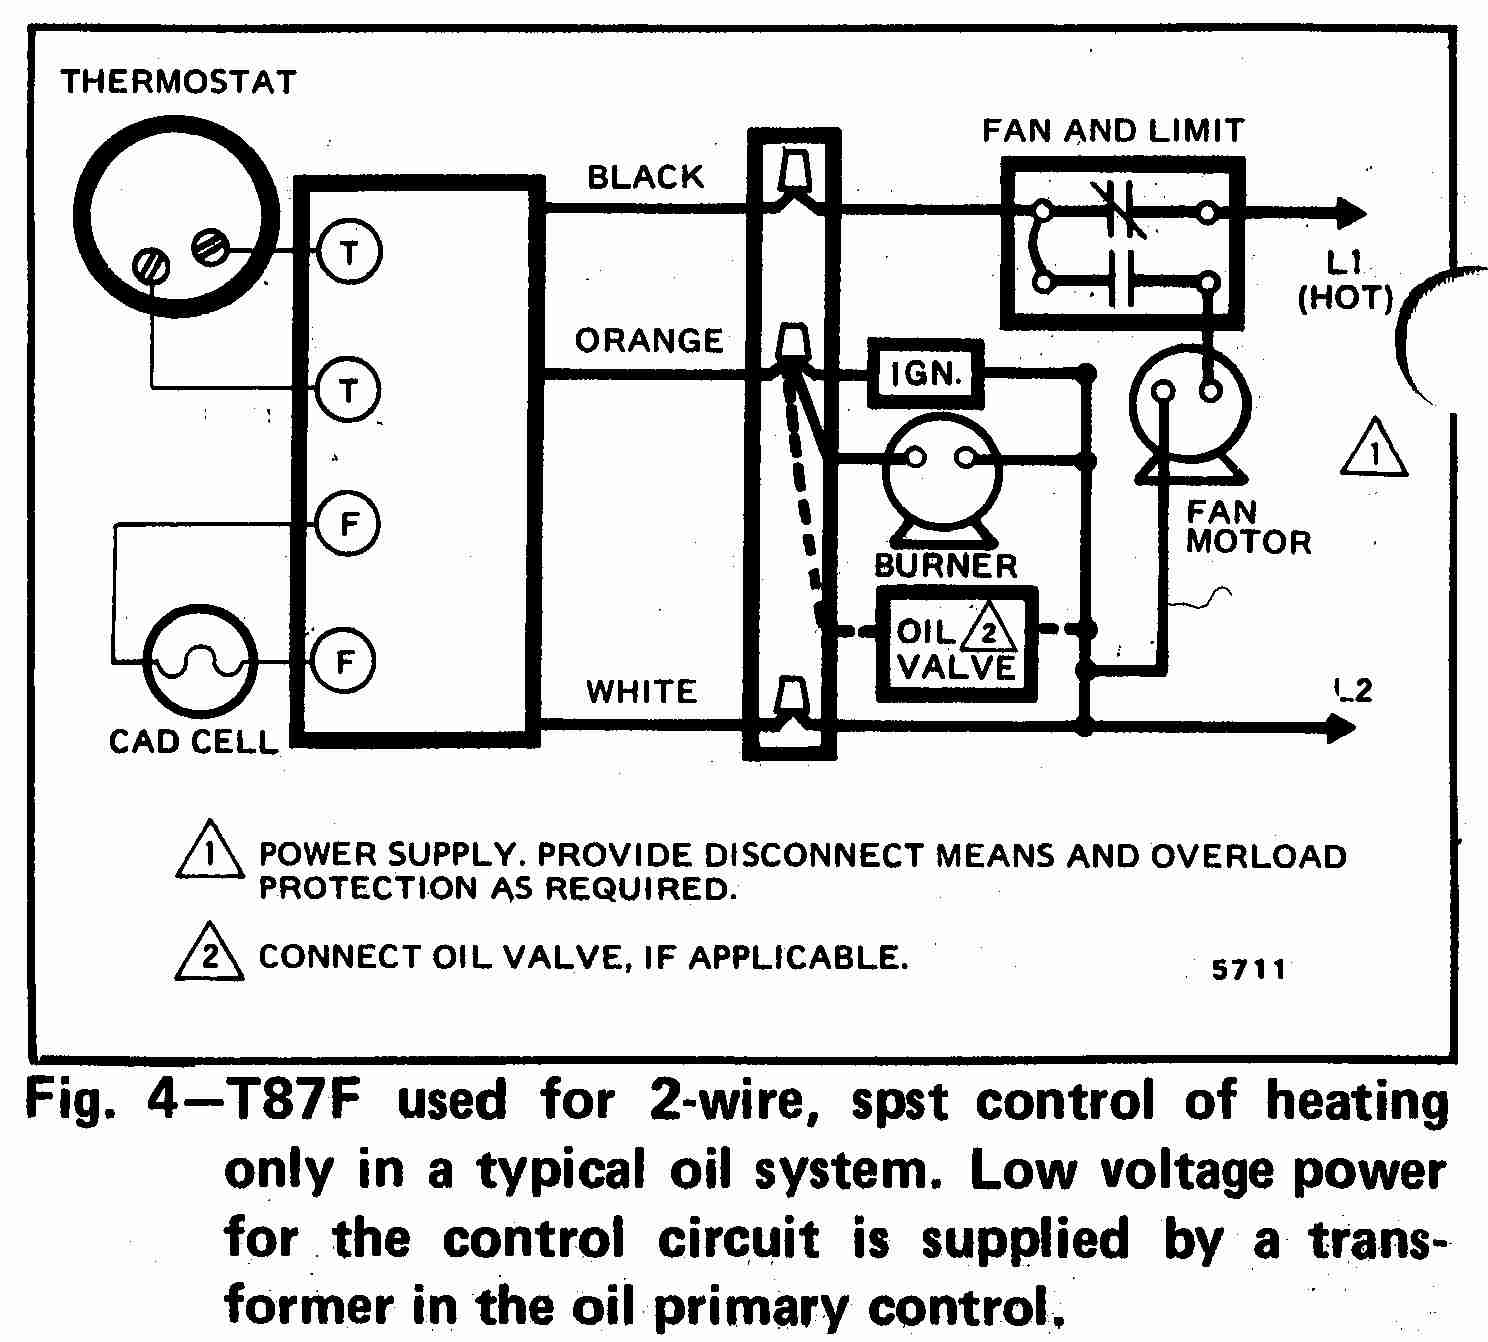 Heating system wiring diagram wiring diagram room thermostat wiring diagrams for hvac systems rh inspectapedia com heating system wiring diagram y plan gravity heating system wiring diagram asfbconference2016